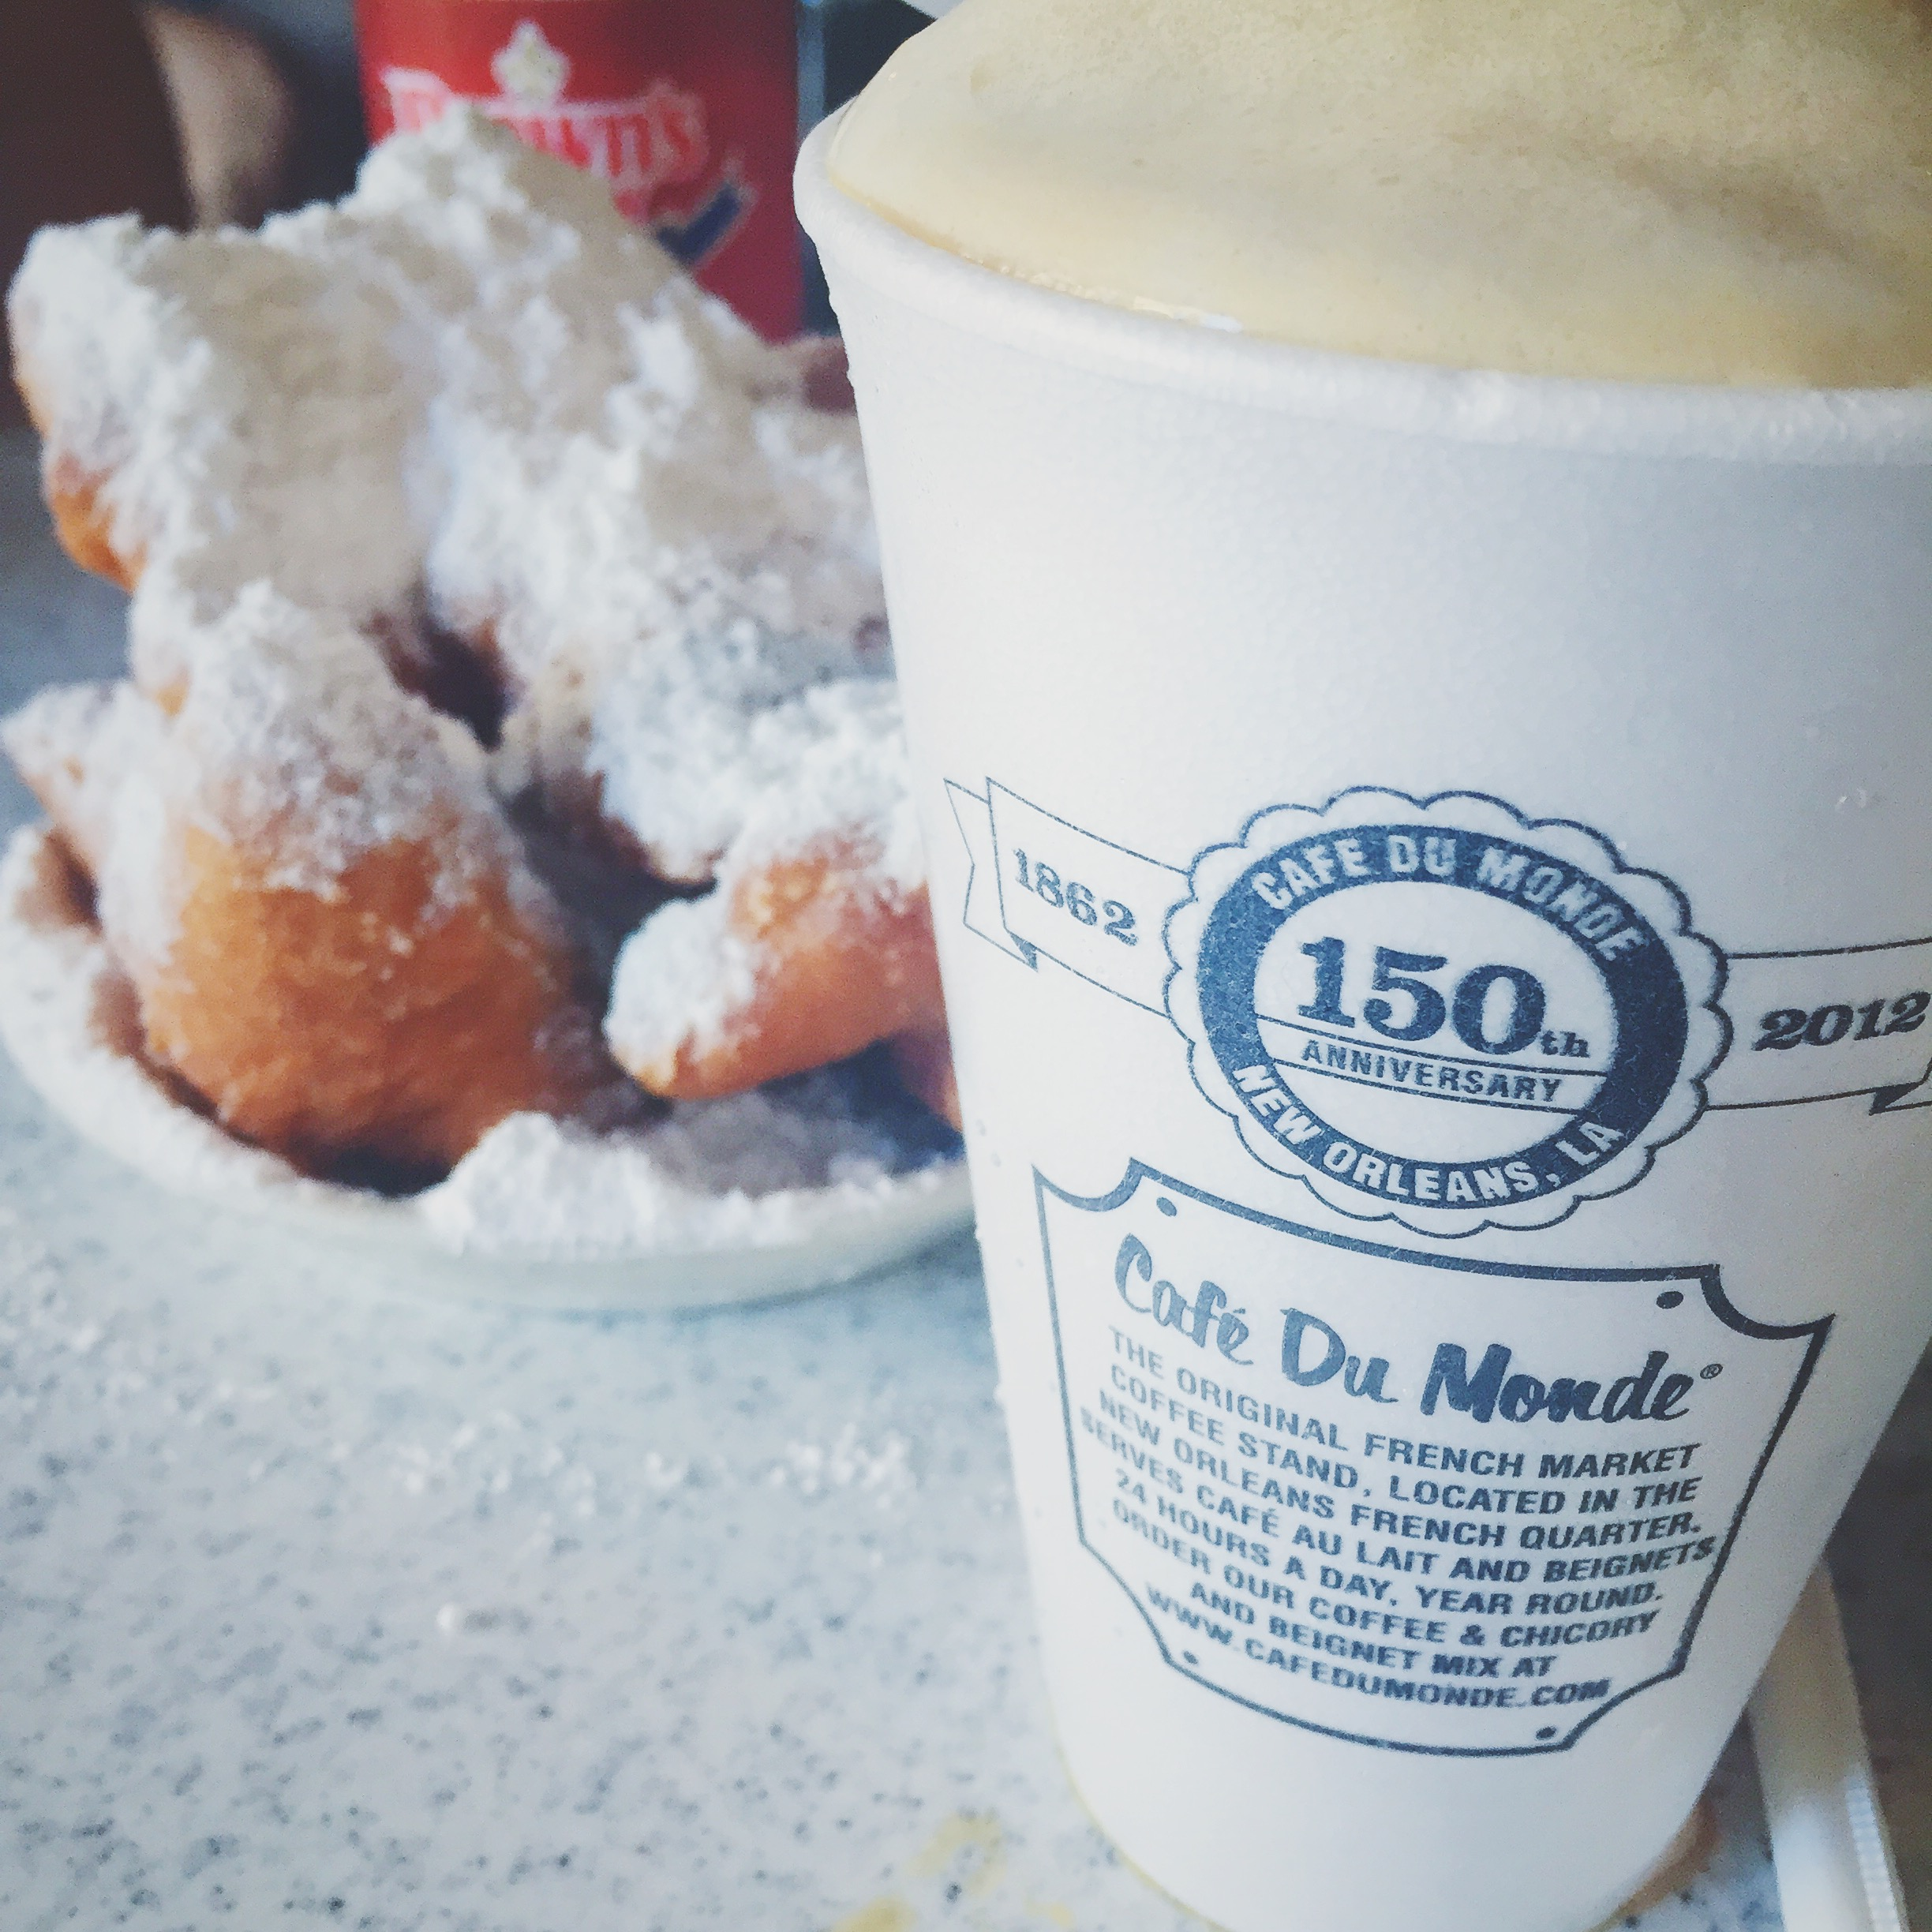 Half a dozen beignets and cafe au lait from Cafe Du Monde, New Orleans, La